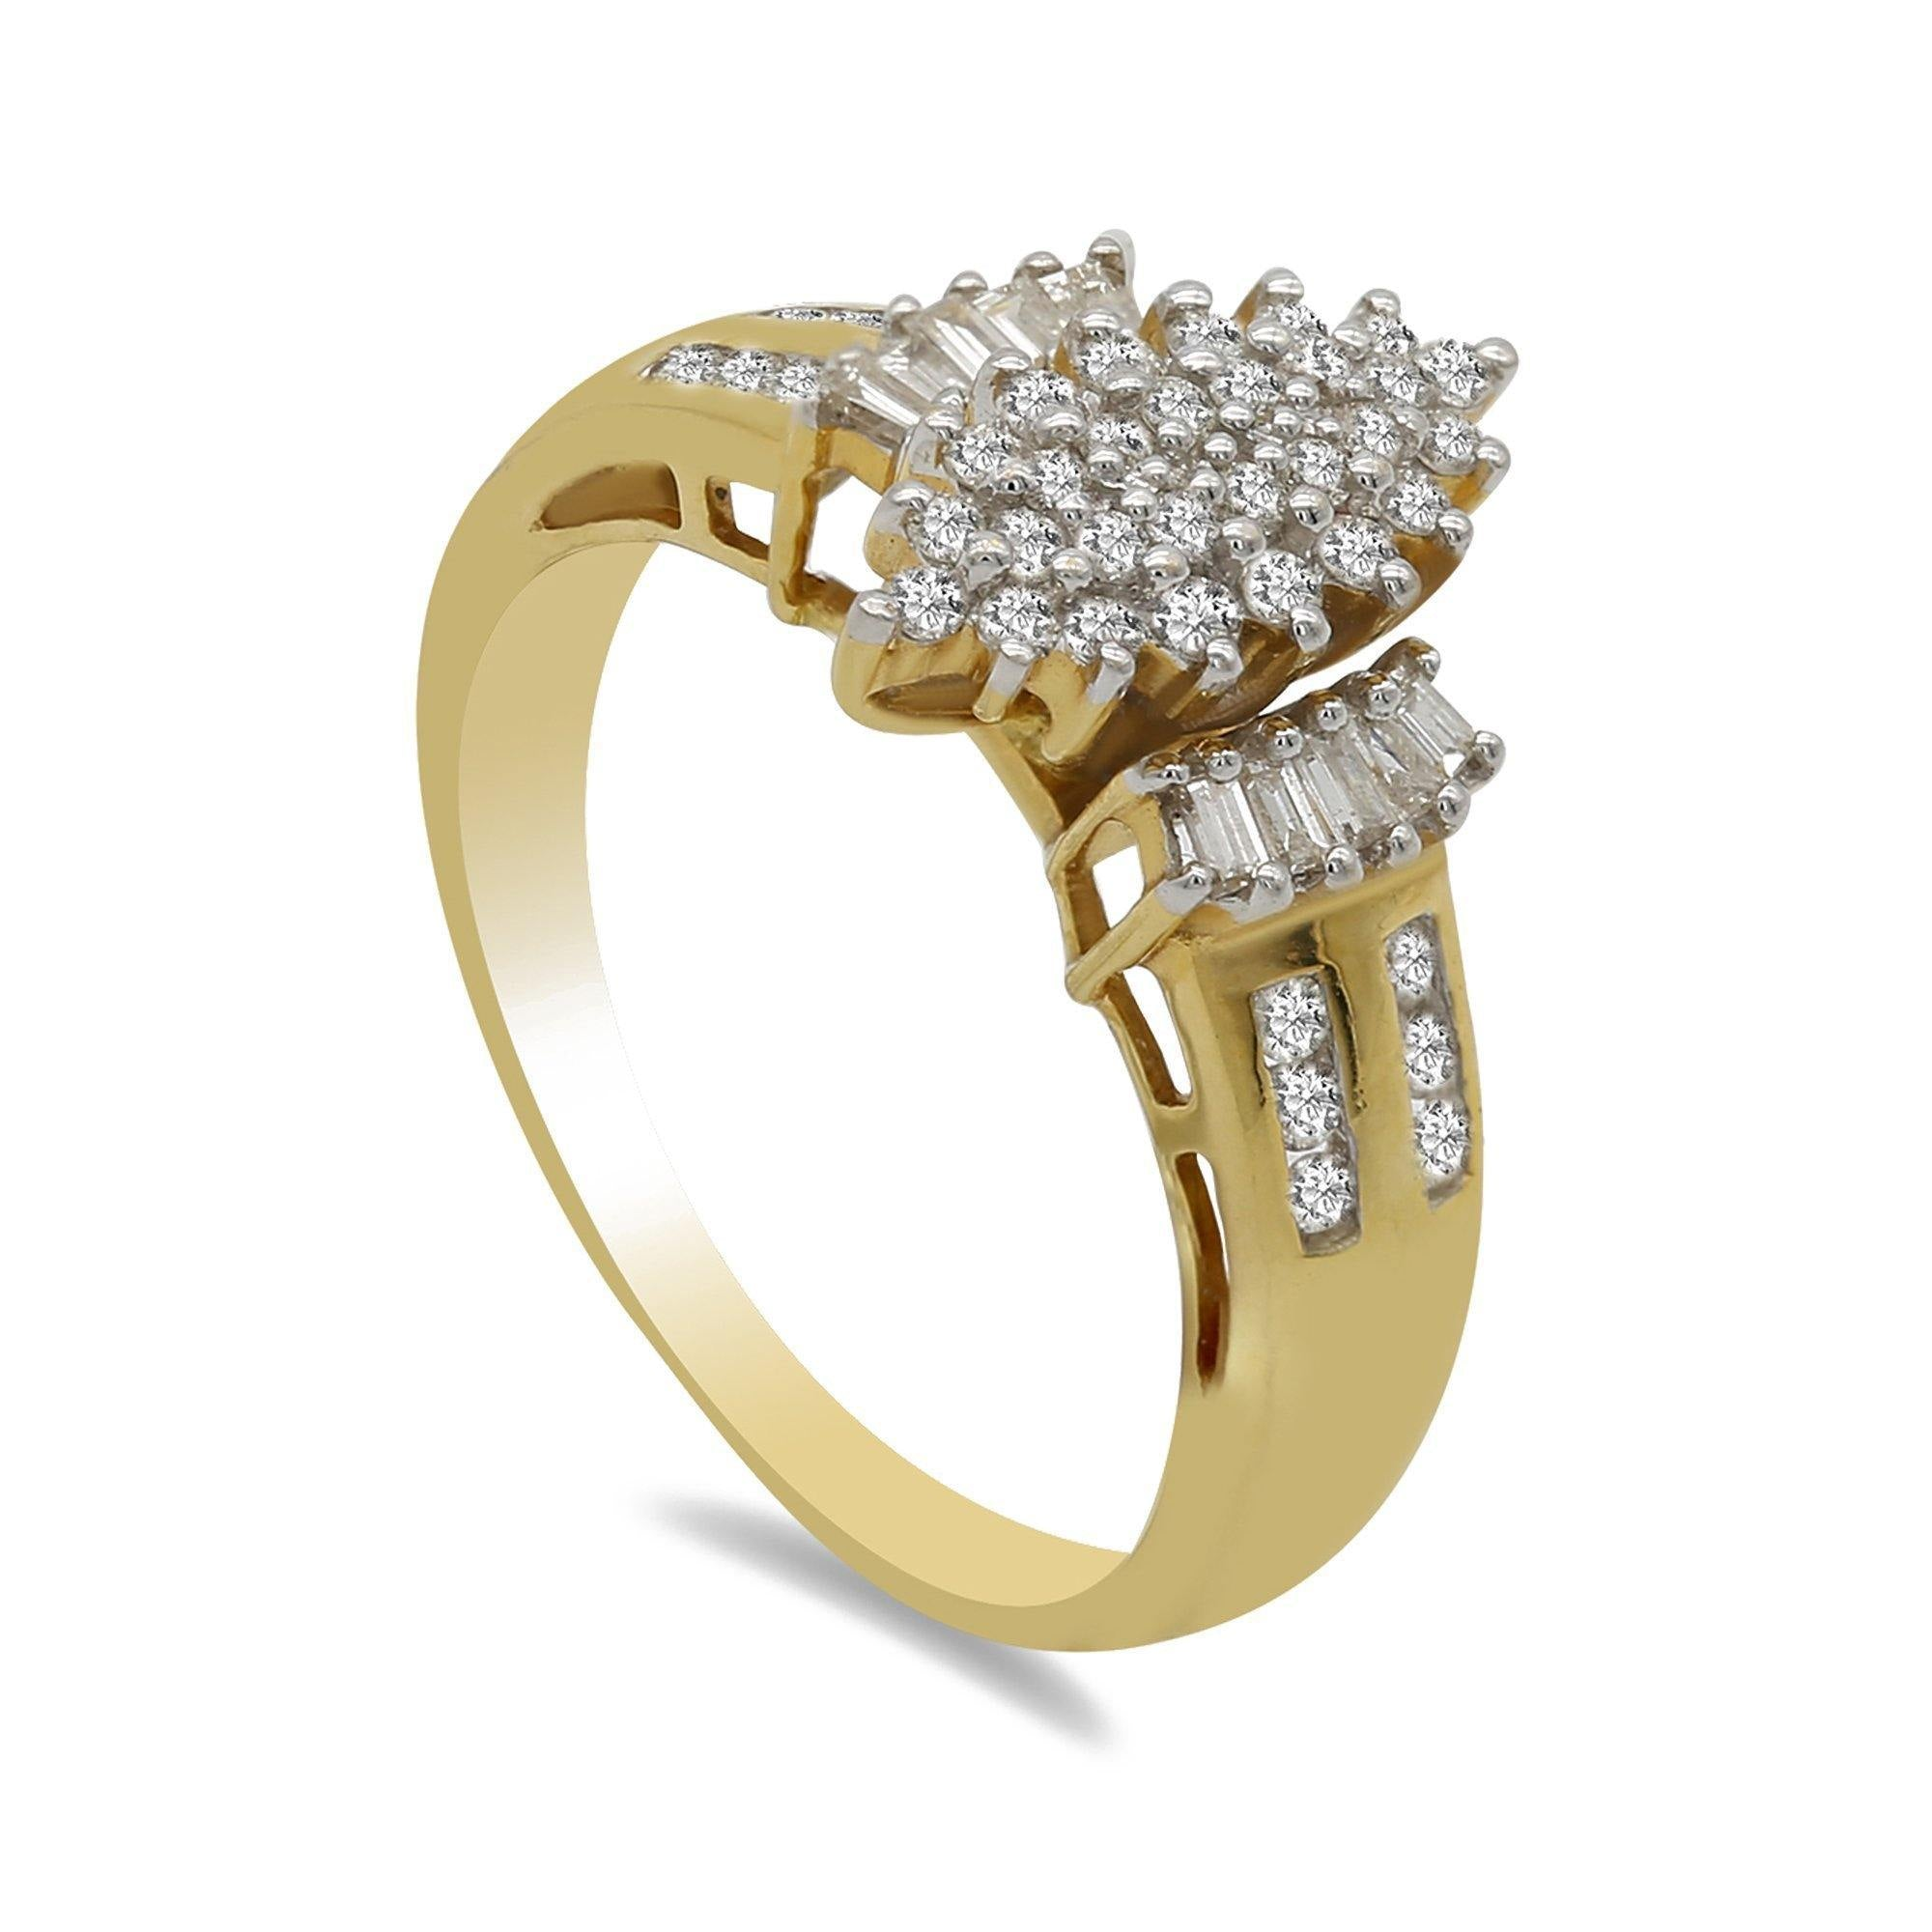 050ct Diamond Ring Wmarquise Cluster Frame Set In 18k Yellow Gold